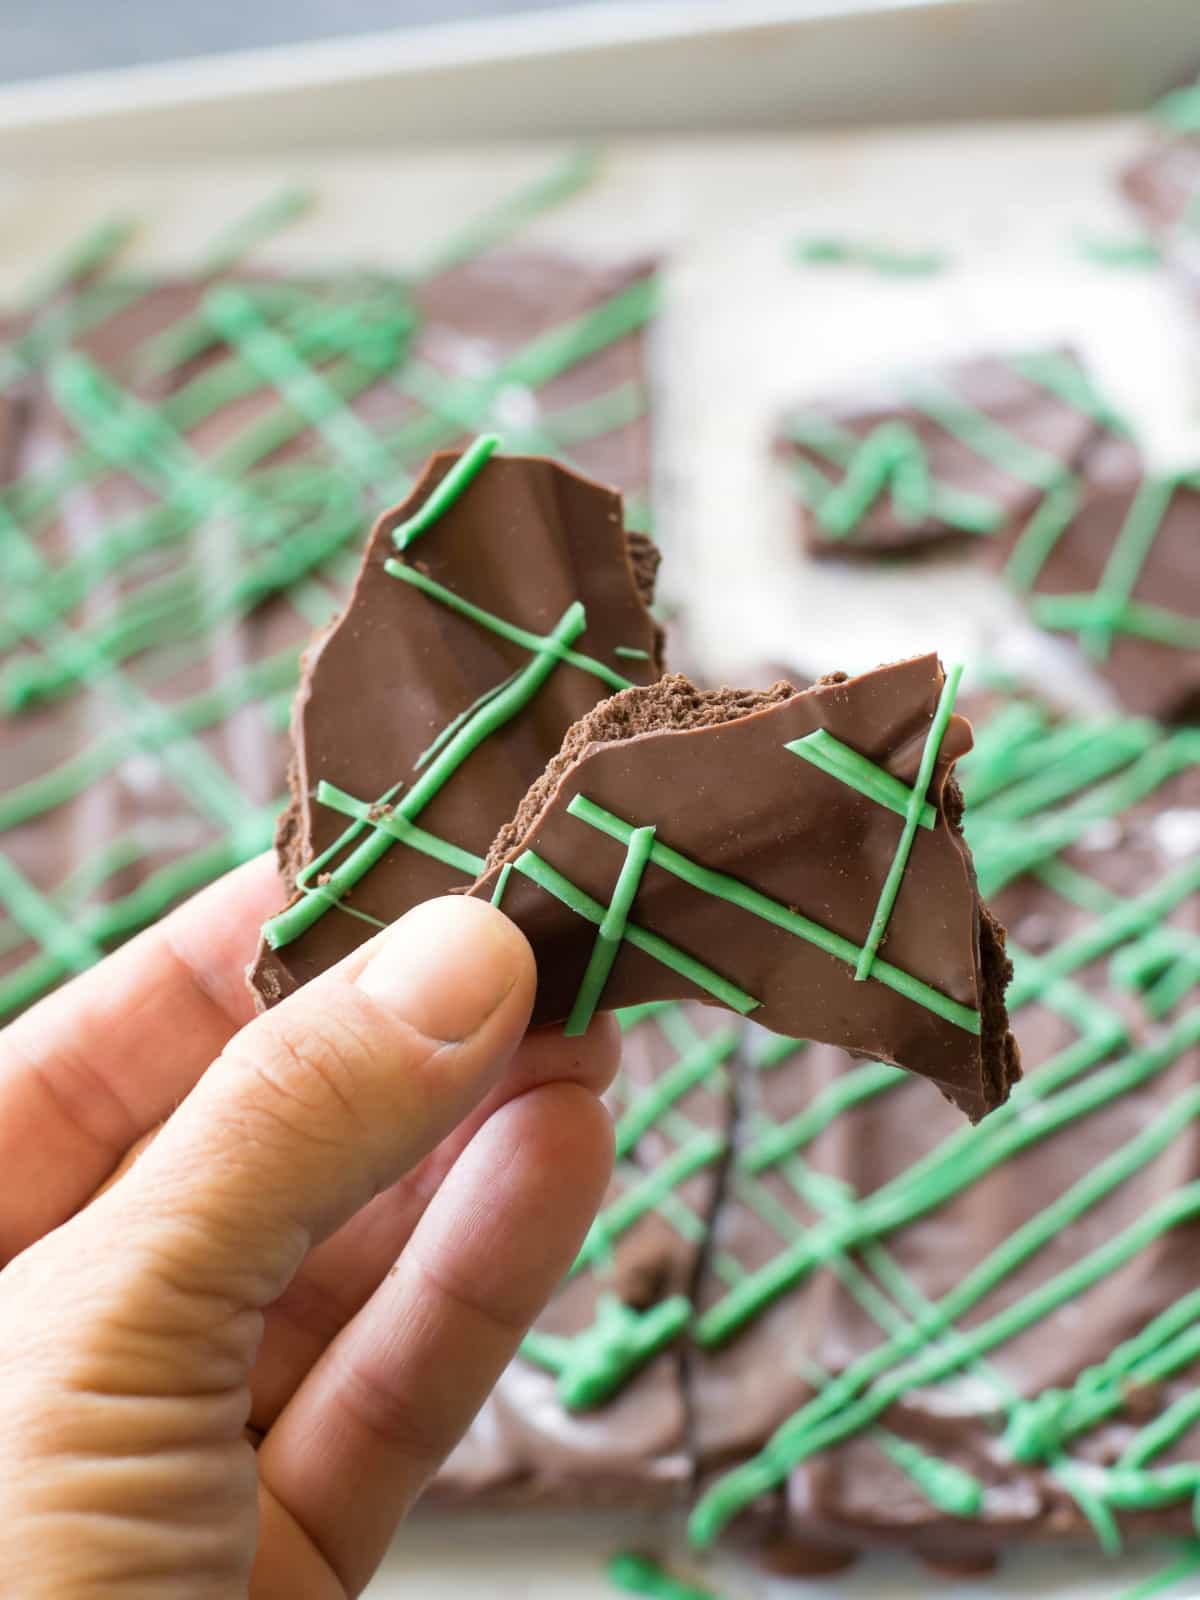 This Chocolate Mint Bark tastes just like your favorite cookie but can be made in your own kitchen! the-girl-who-ate-everything.com